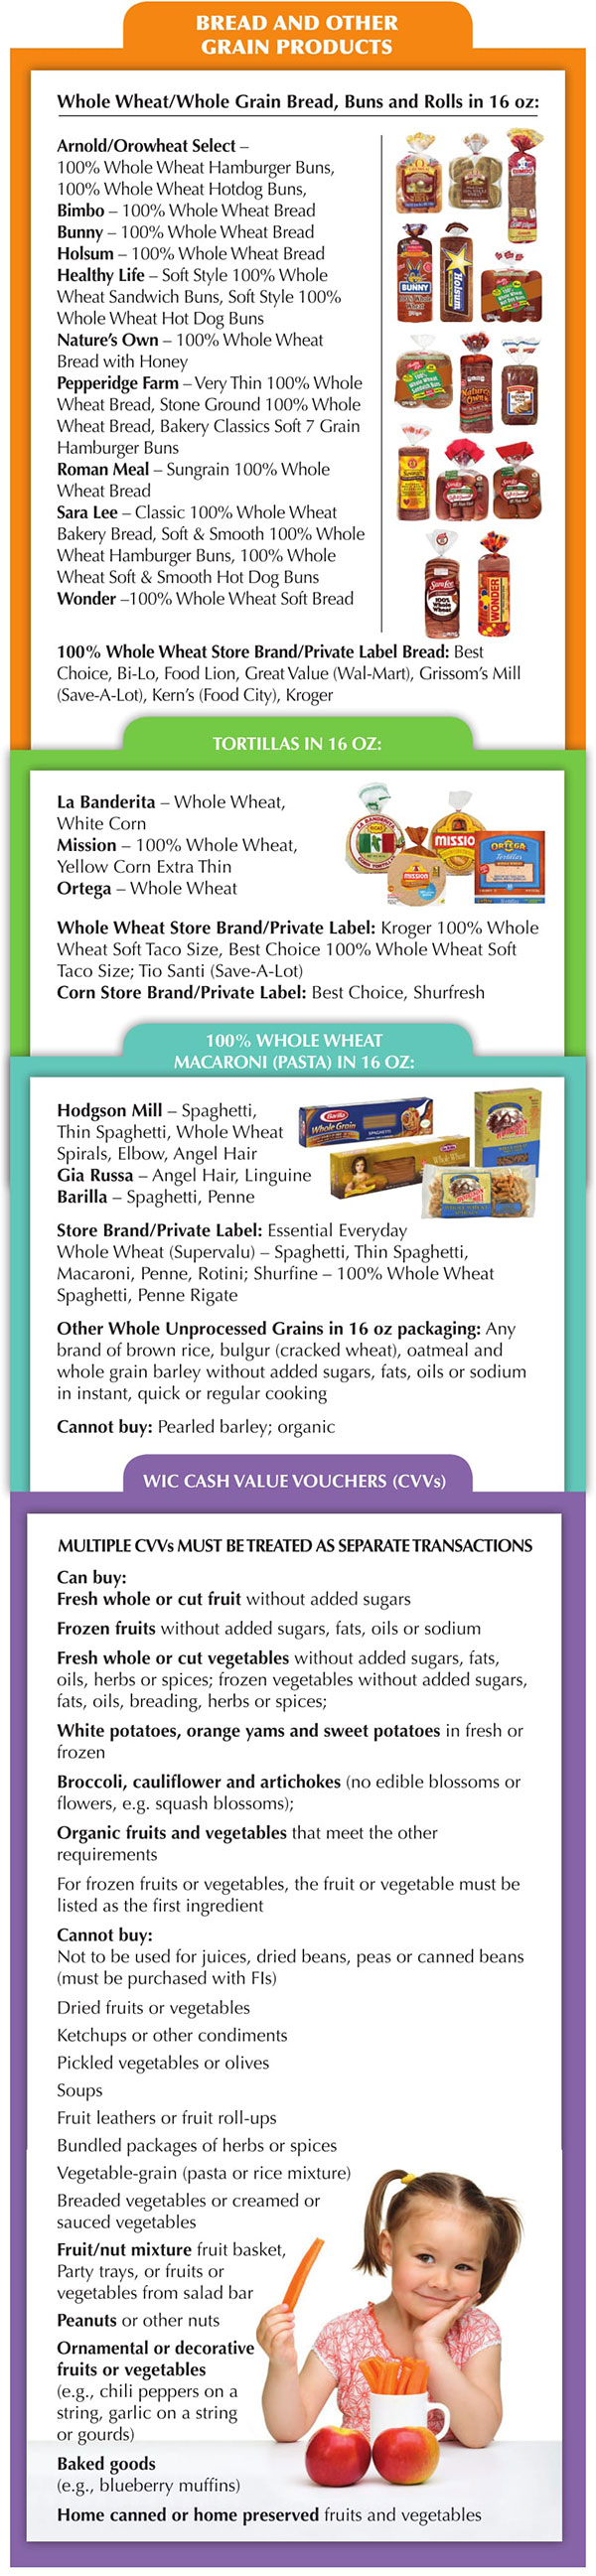 Tennessee WIC Food List Bread, Grain Products, Tortillas, Whole Wheat Pasta and WIC Cash Vouchers